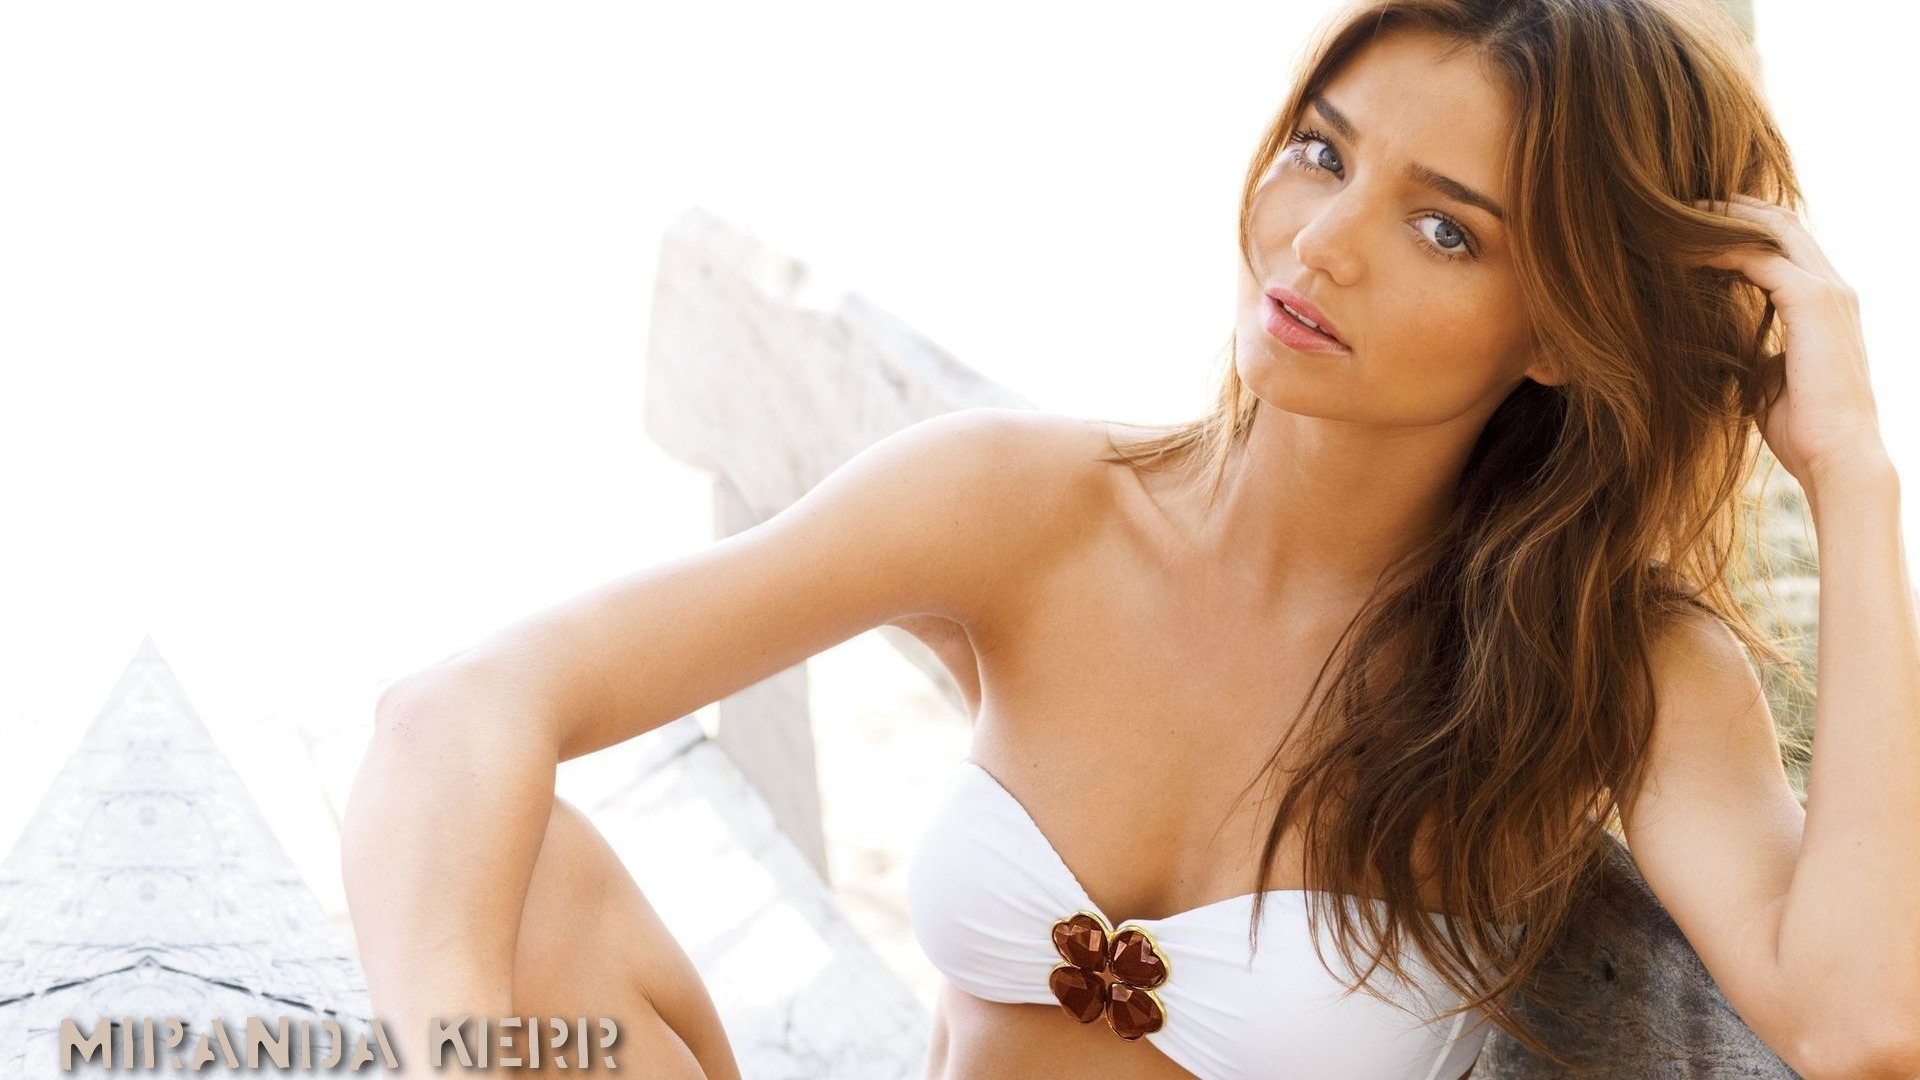 Miranda Kerr #026 - 1920x1080 Wallpapers Pictures Photos Images